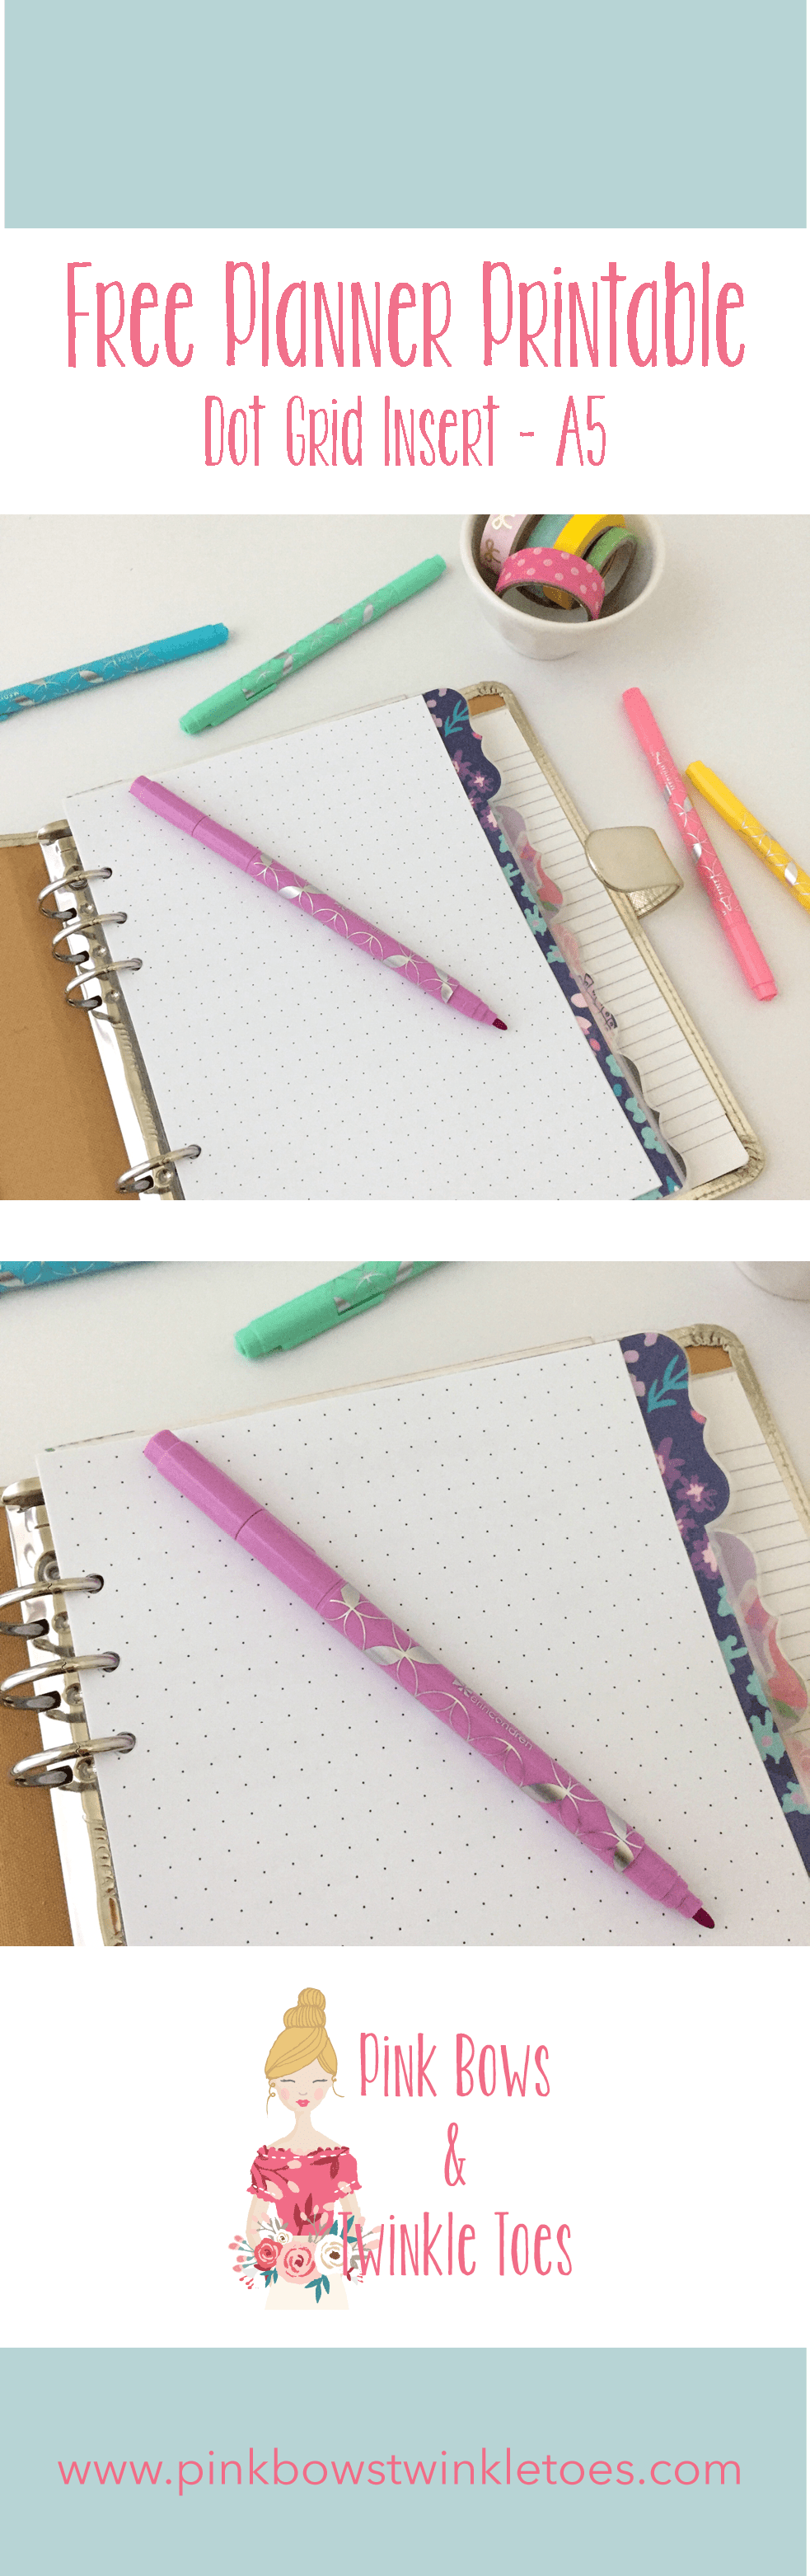 photograph regarding A5 Dot Grid Printable named Dot Grid Include: Absolutely free A5 Planner Printable - Crimson Bows